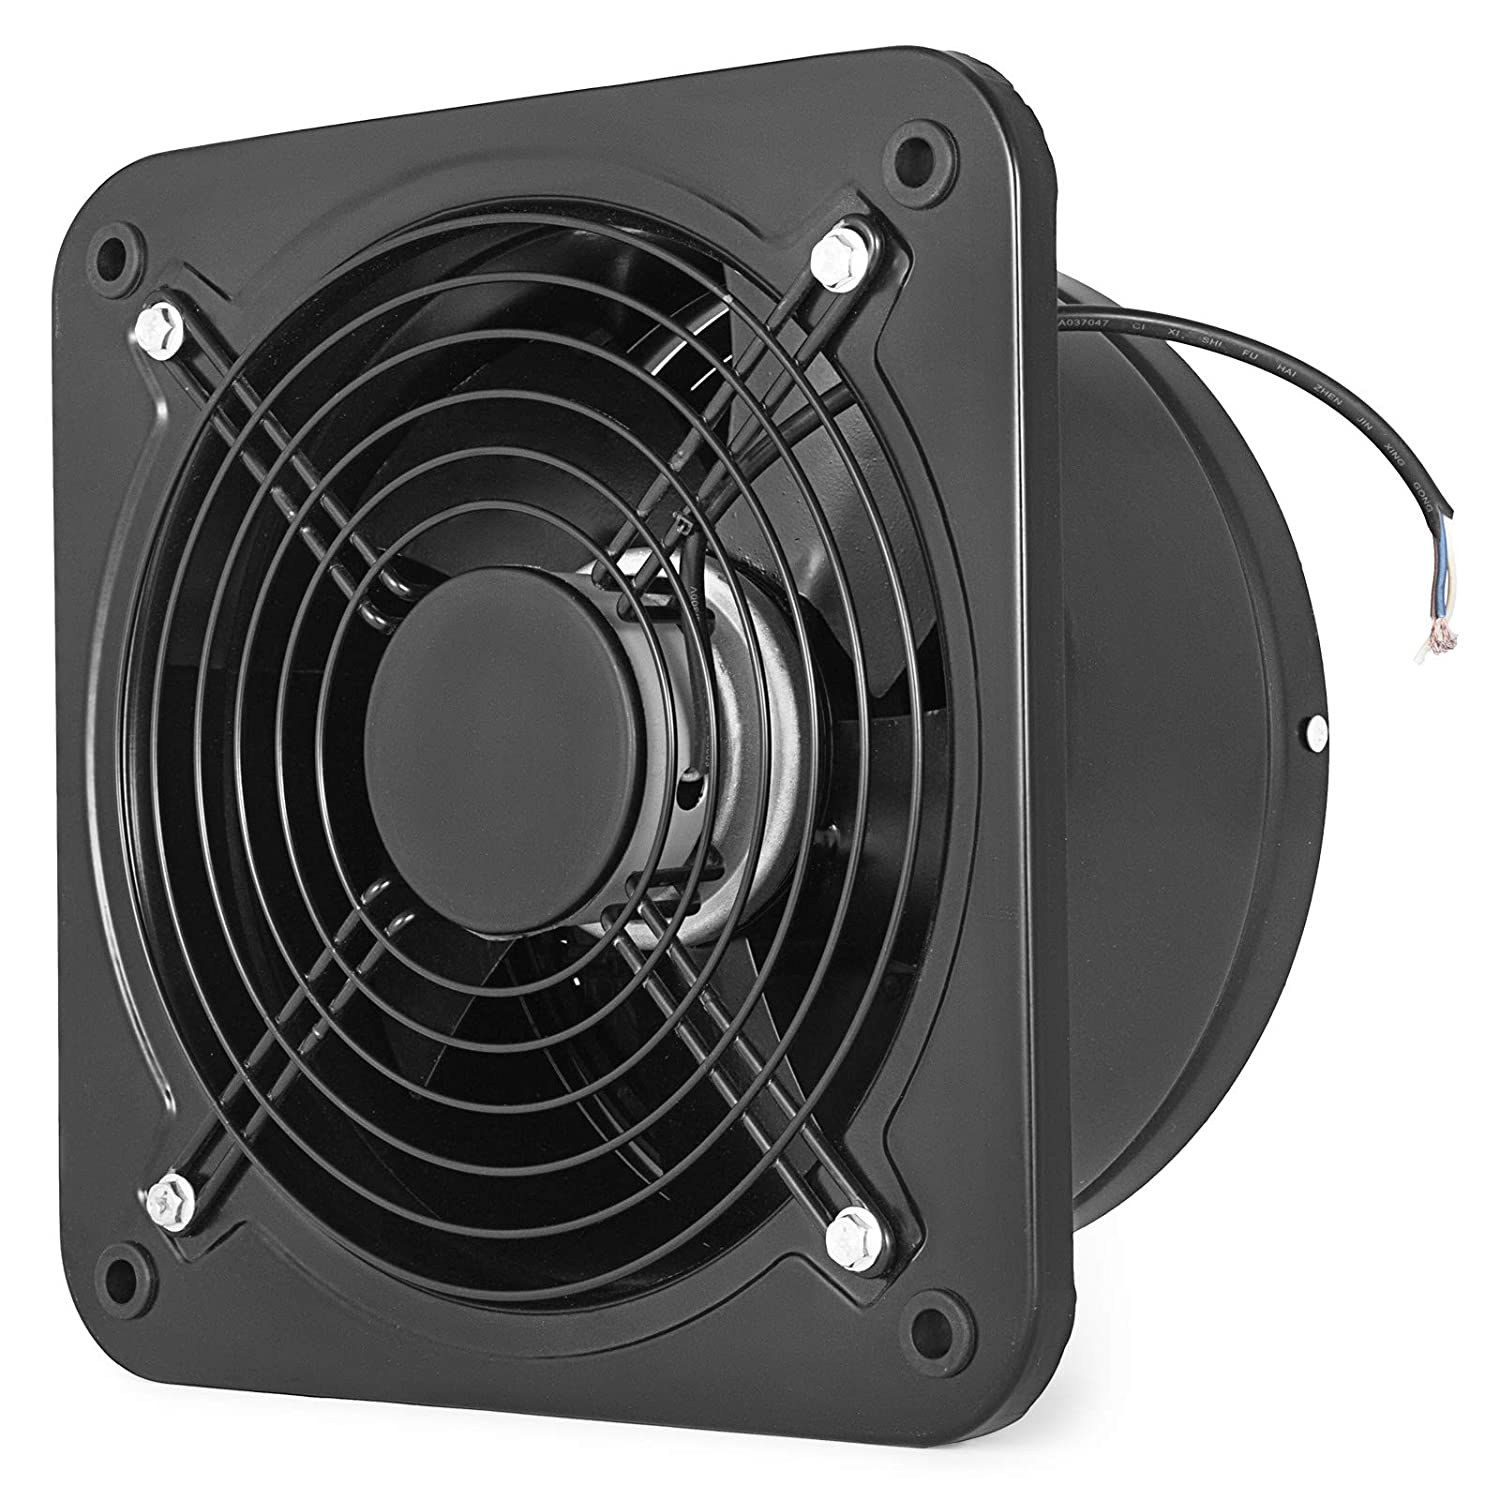 Mophorn 250MM Ventilador de Escape Extractor de Aire ...